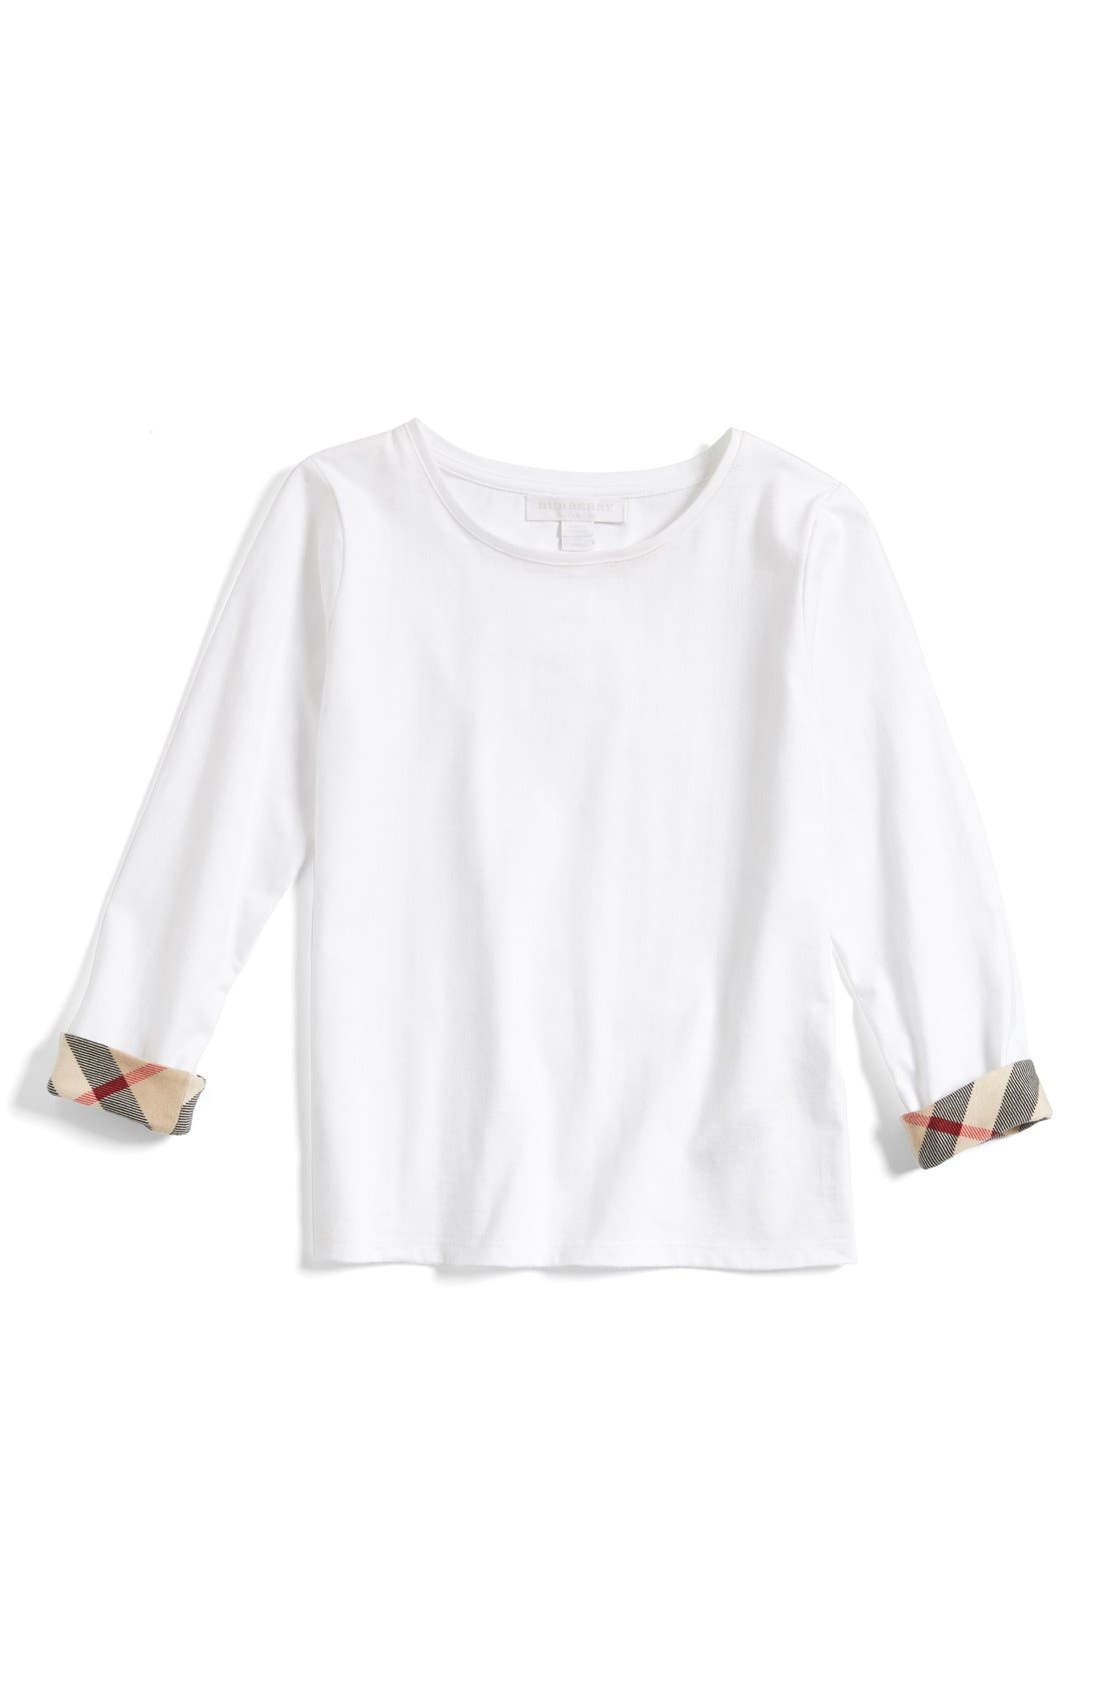 Main Image - Burberry 'Tulisa' Tee (Little Girls & Big Girls)